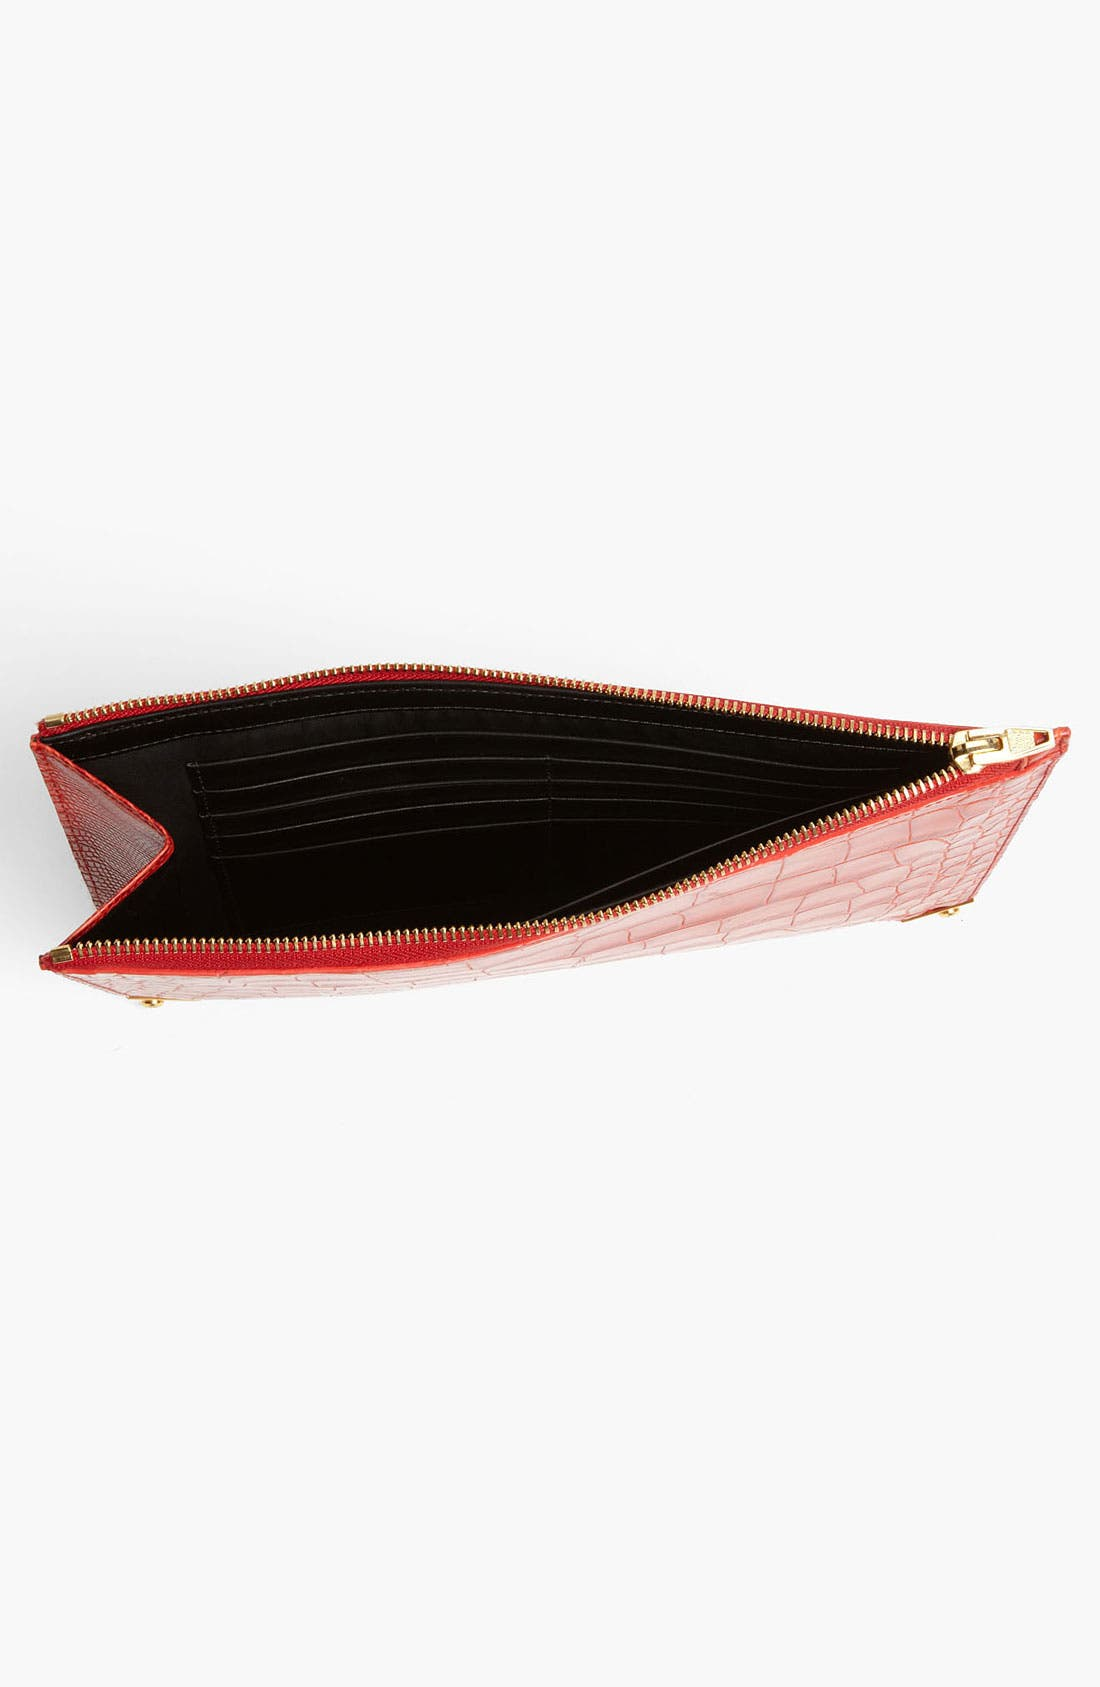 Alternate Image 3  - Alexander Wang 'Prisma' Embossed Leather Clutch